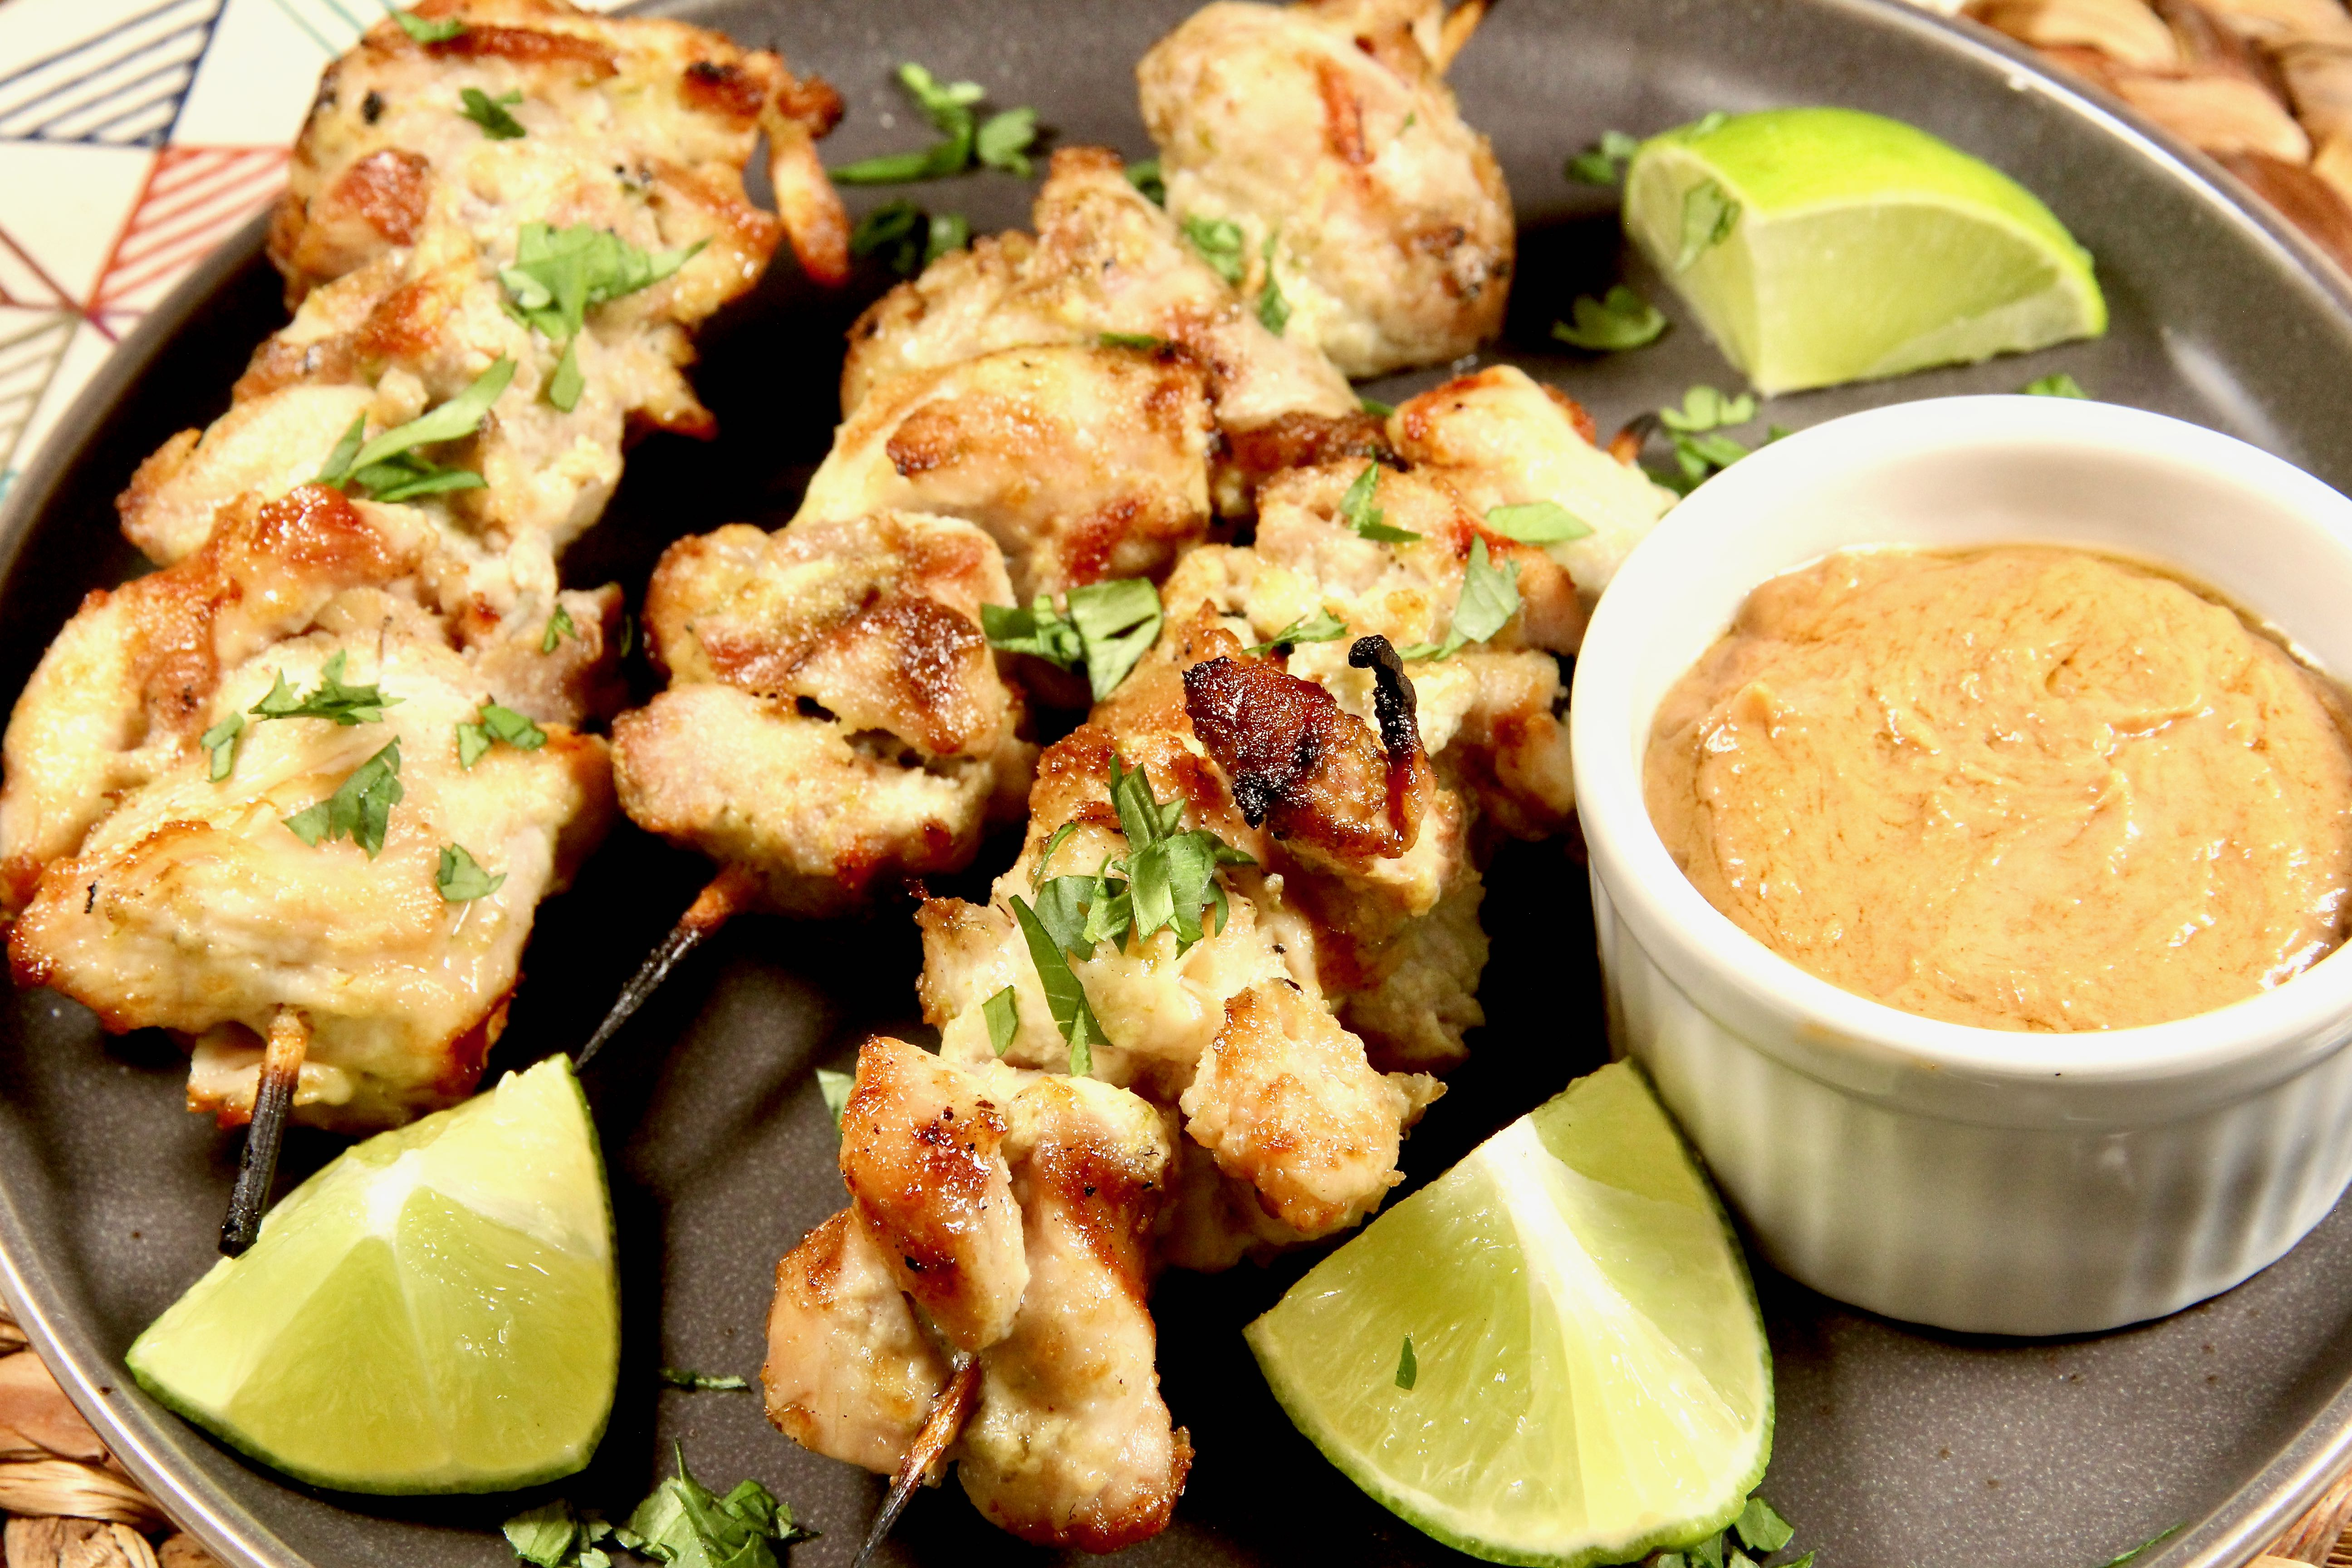 Lime-Ginger Chicken Kabobs with Peanut Sauce